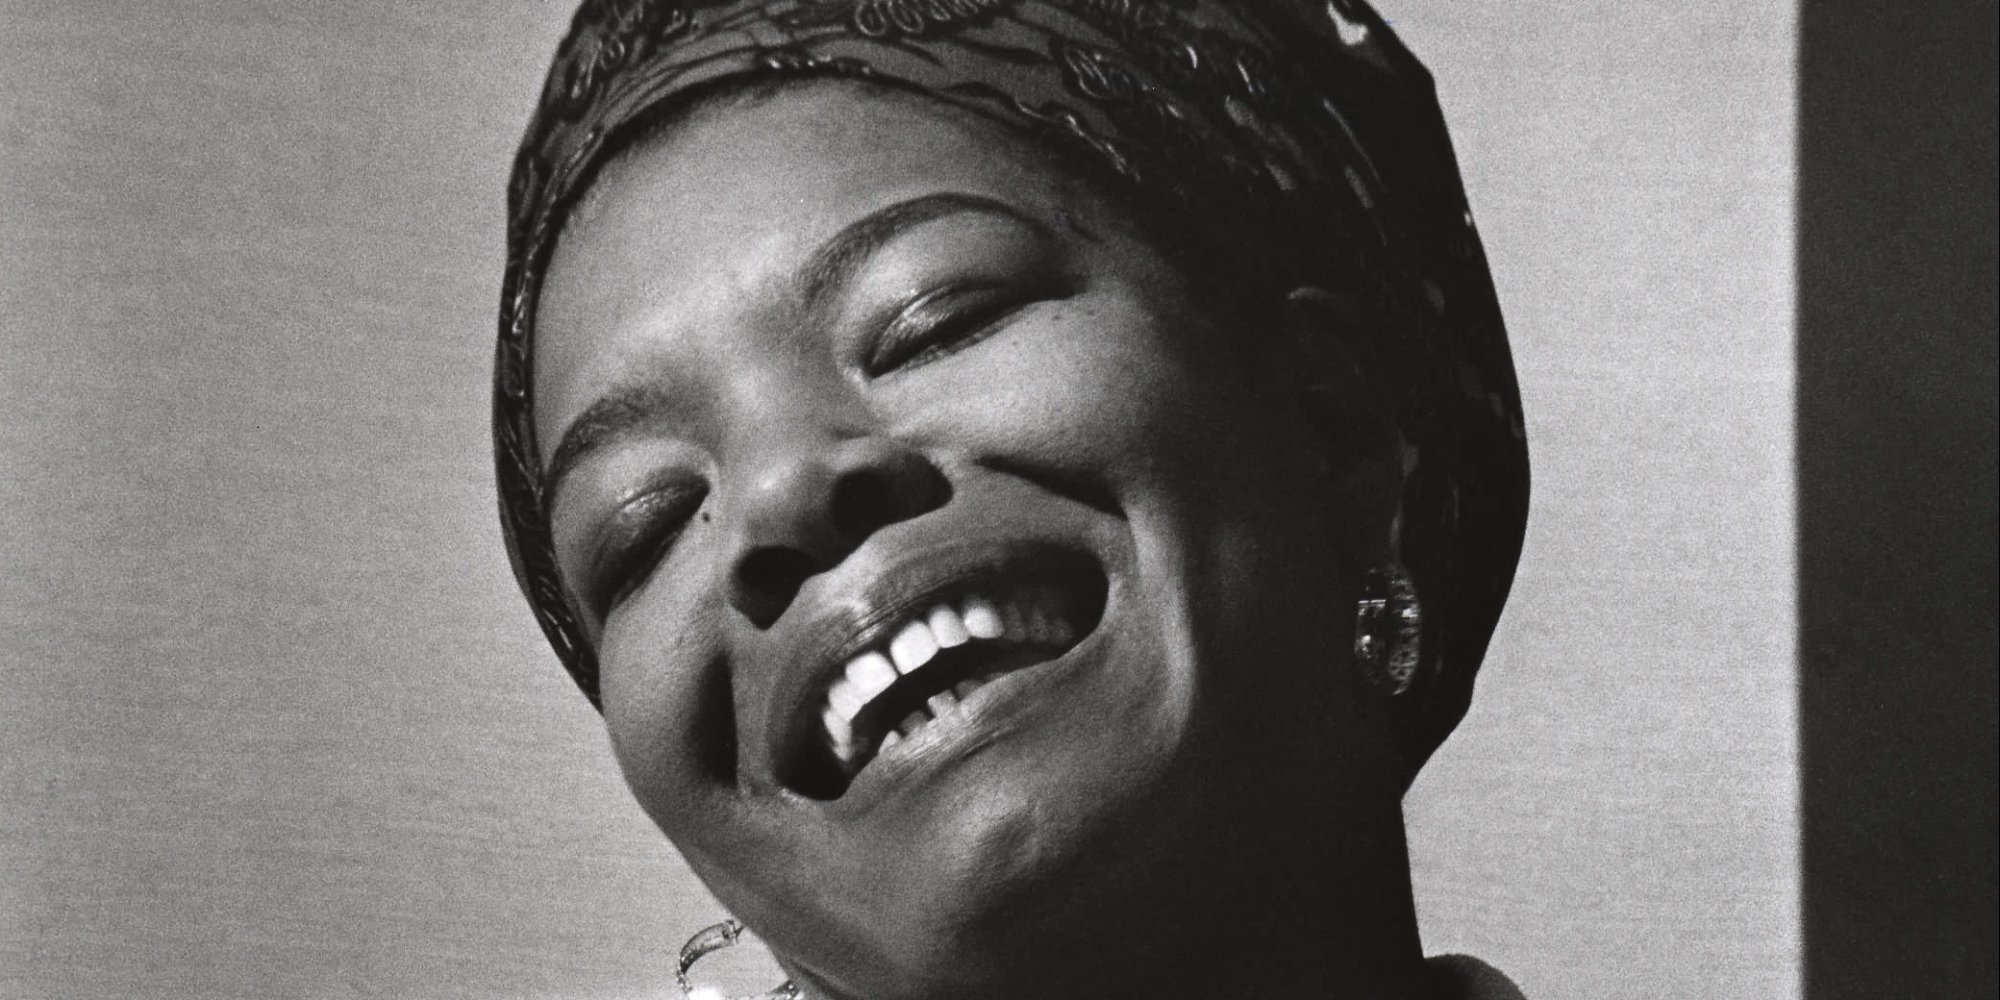 inspiring a angelou poems you can online huffpost